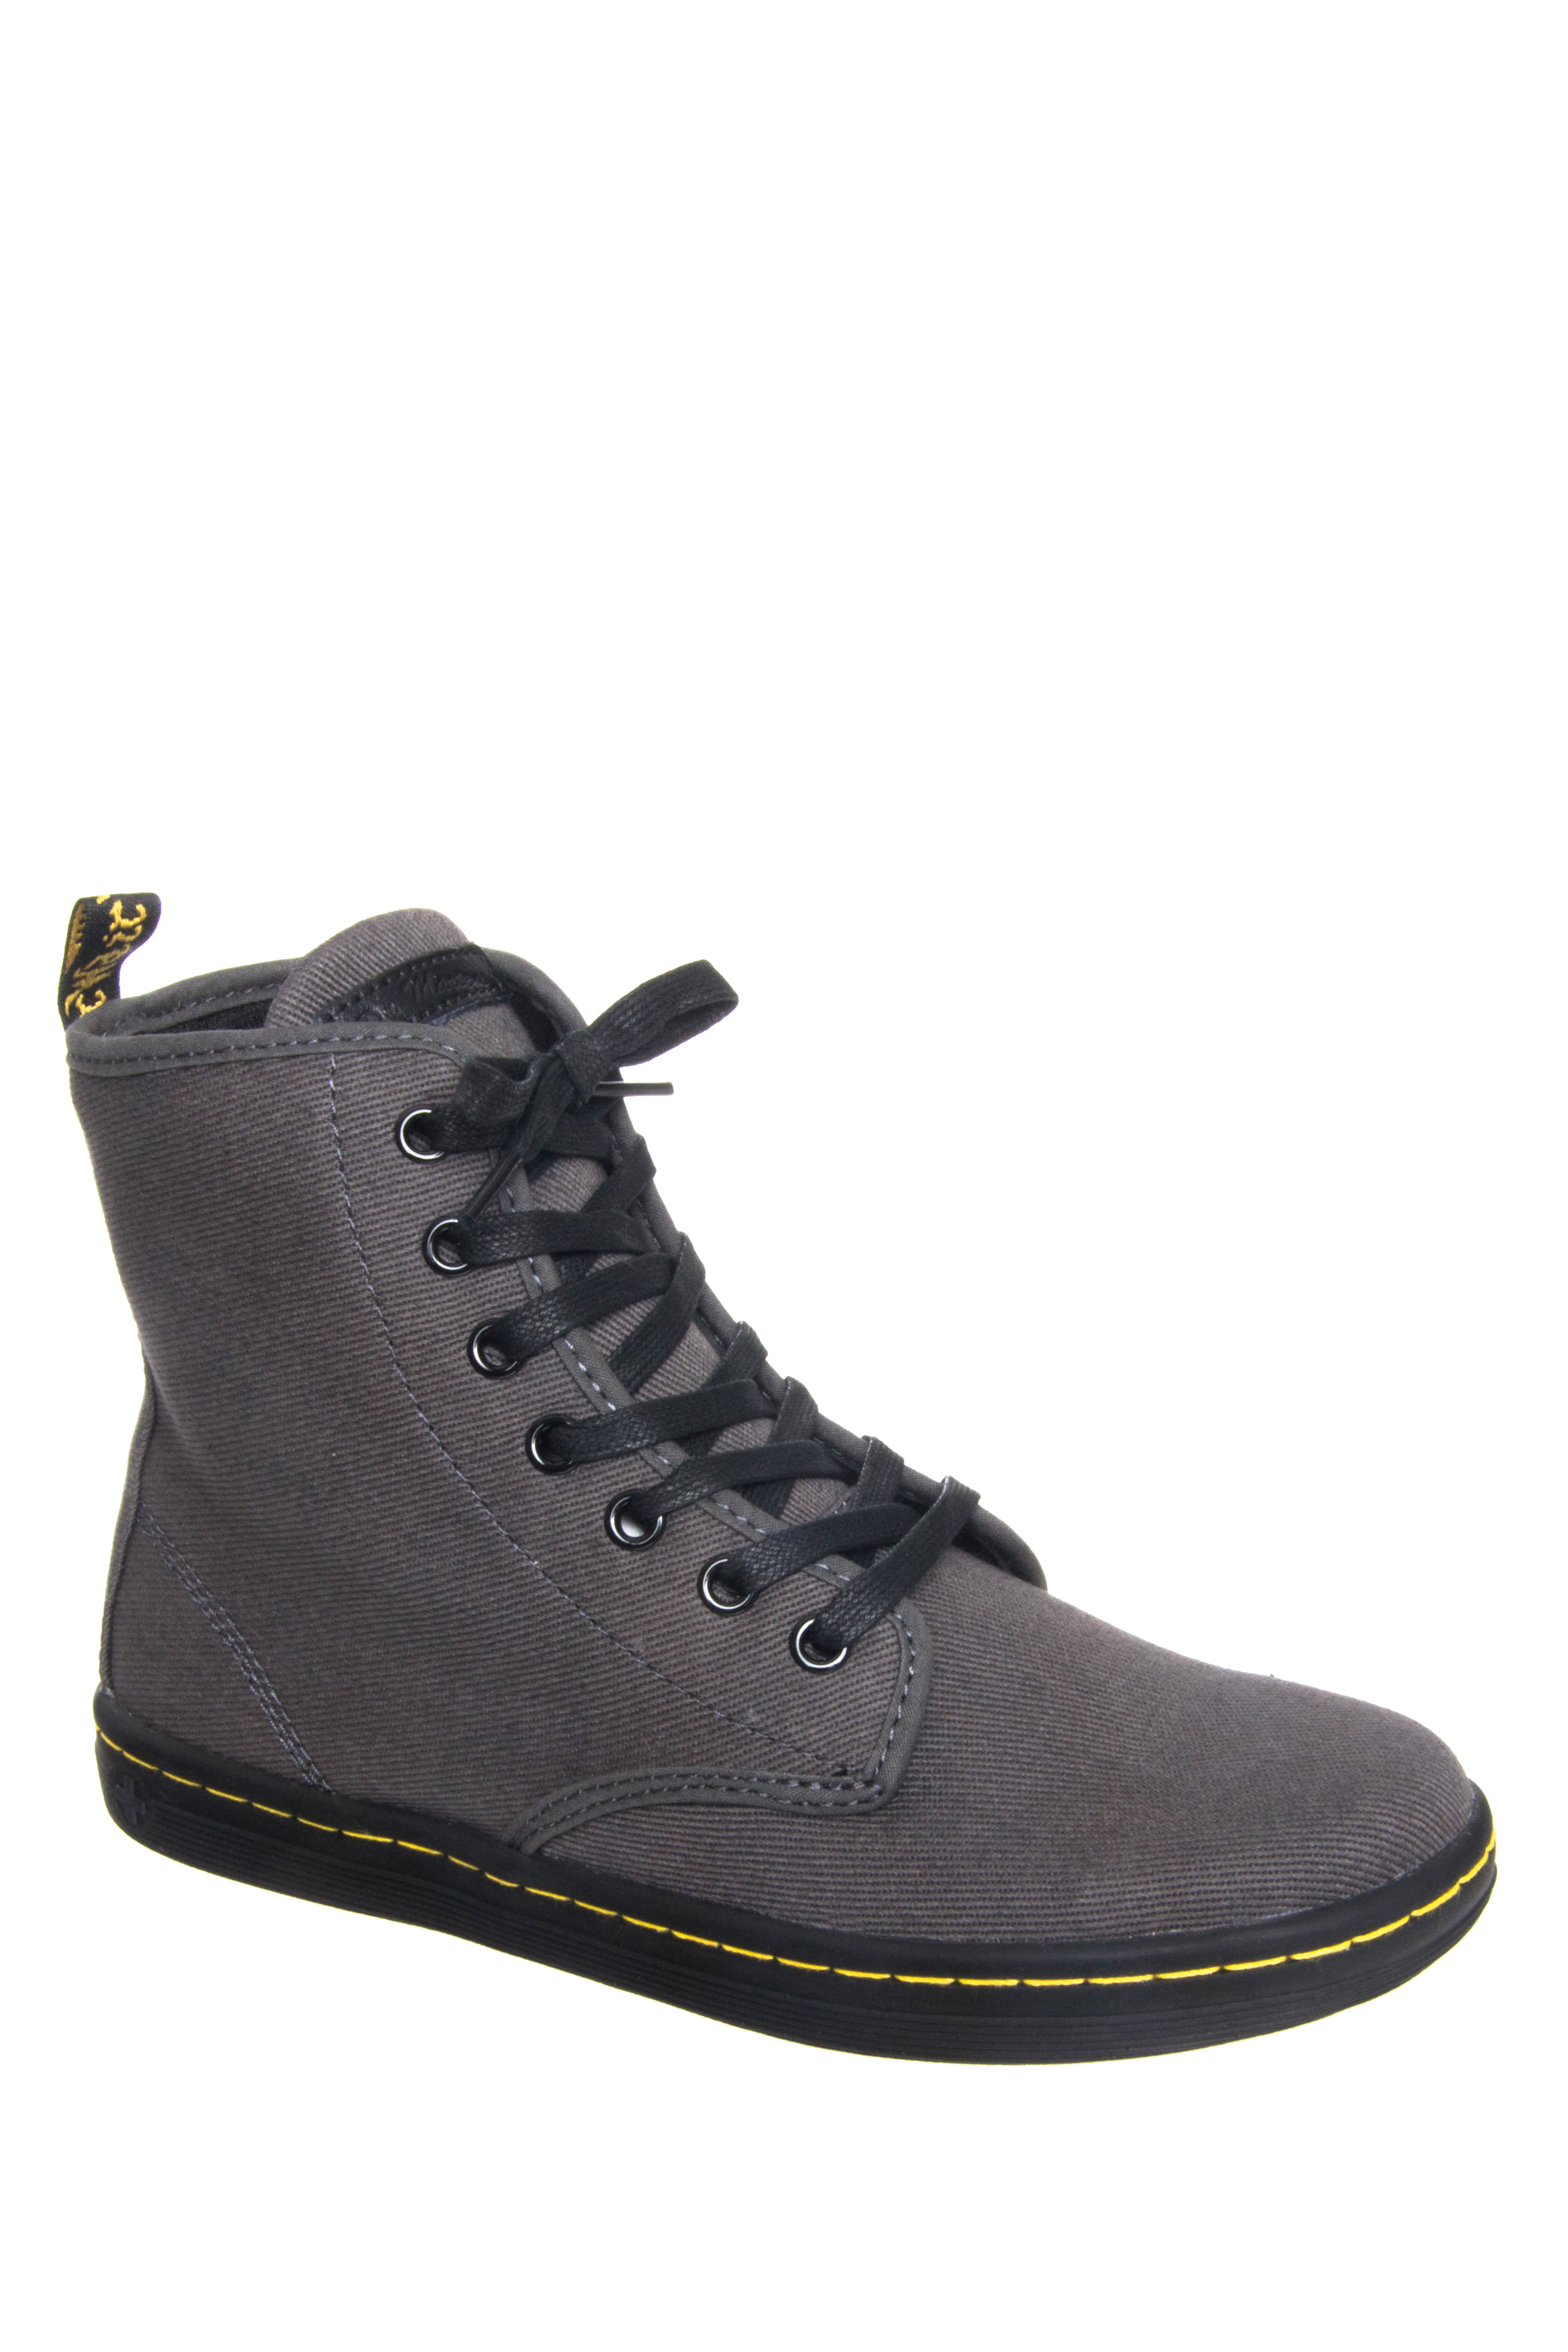 Dr. Martens Shoreditch Overdyed Canvas Boots - Lead